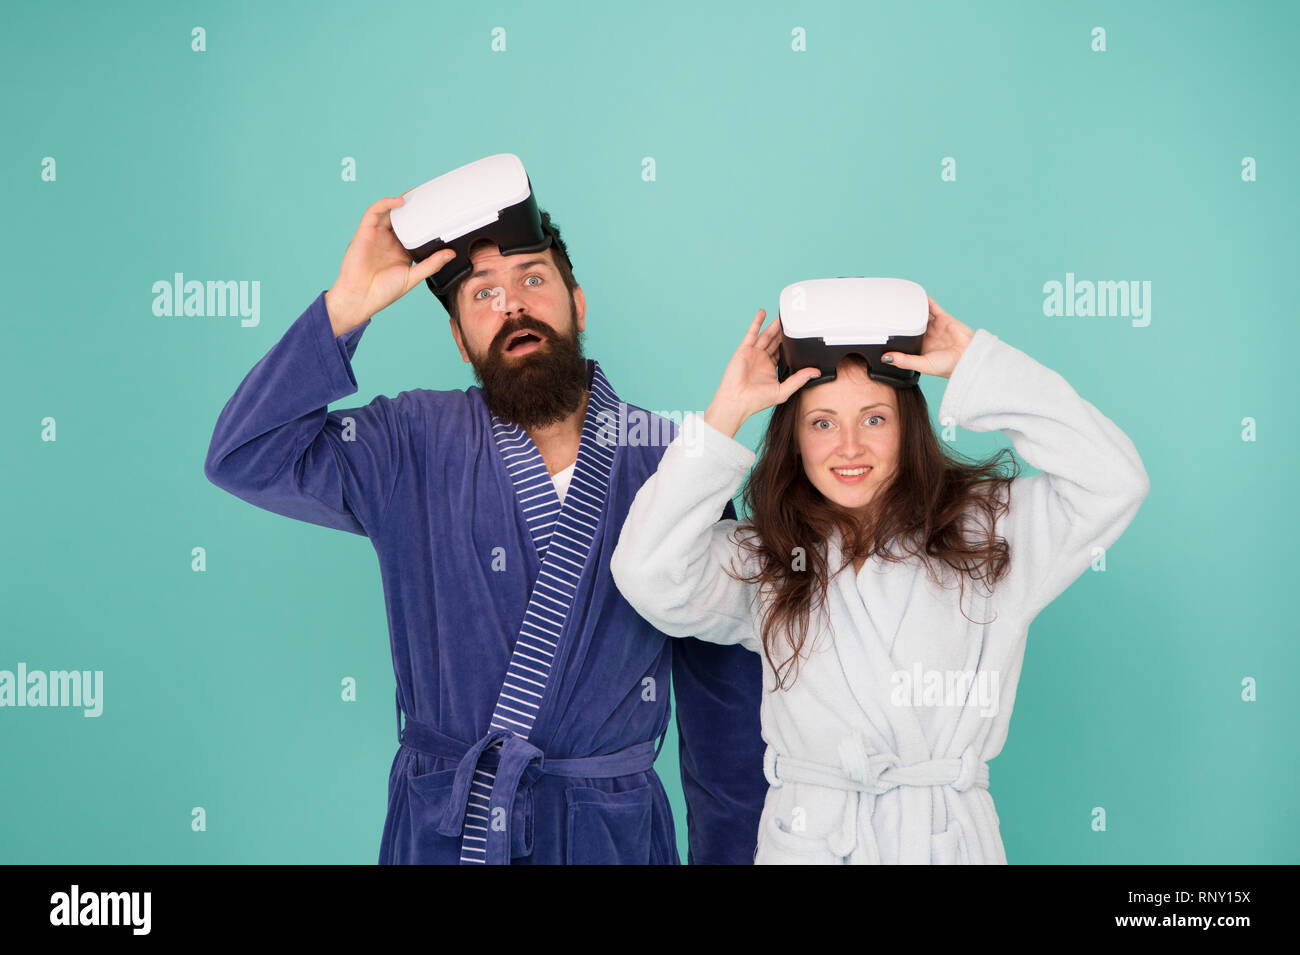 e47d2ce58263 Happy family in vr glasses. Good morning. Virtual reality. Love. Couple in  love. Family. Bearded man and woman in robe pajama. it it so real. future  is now. ...